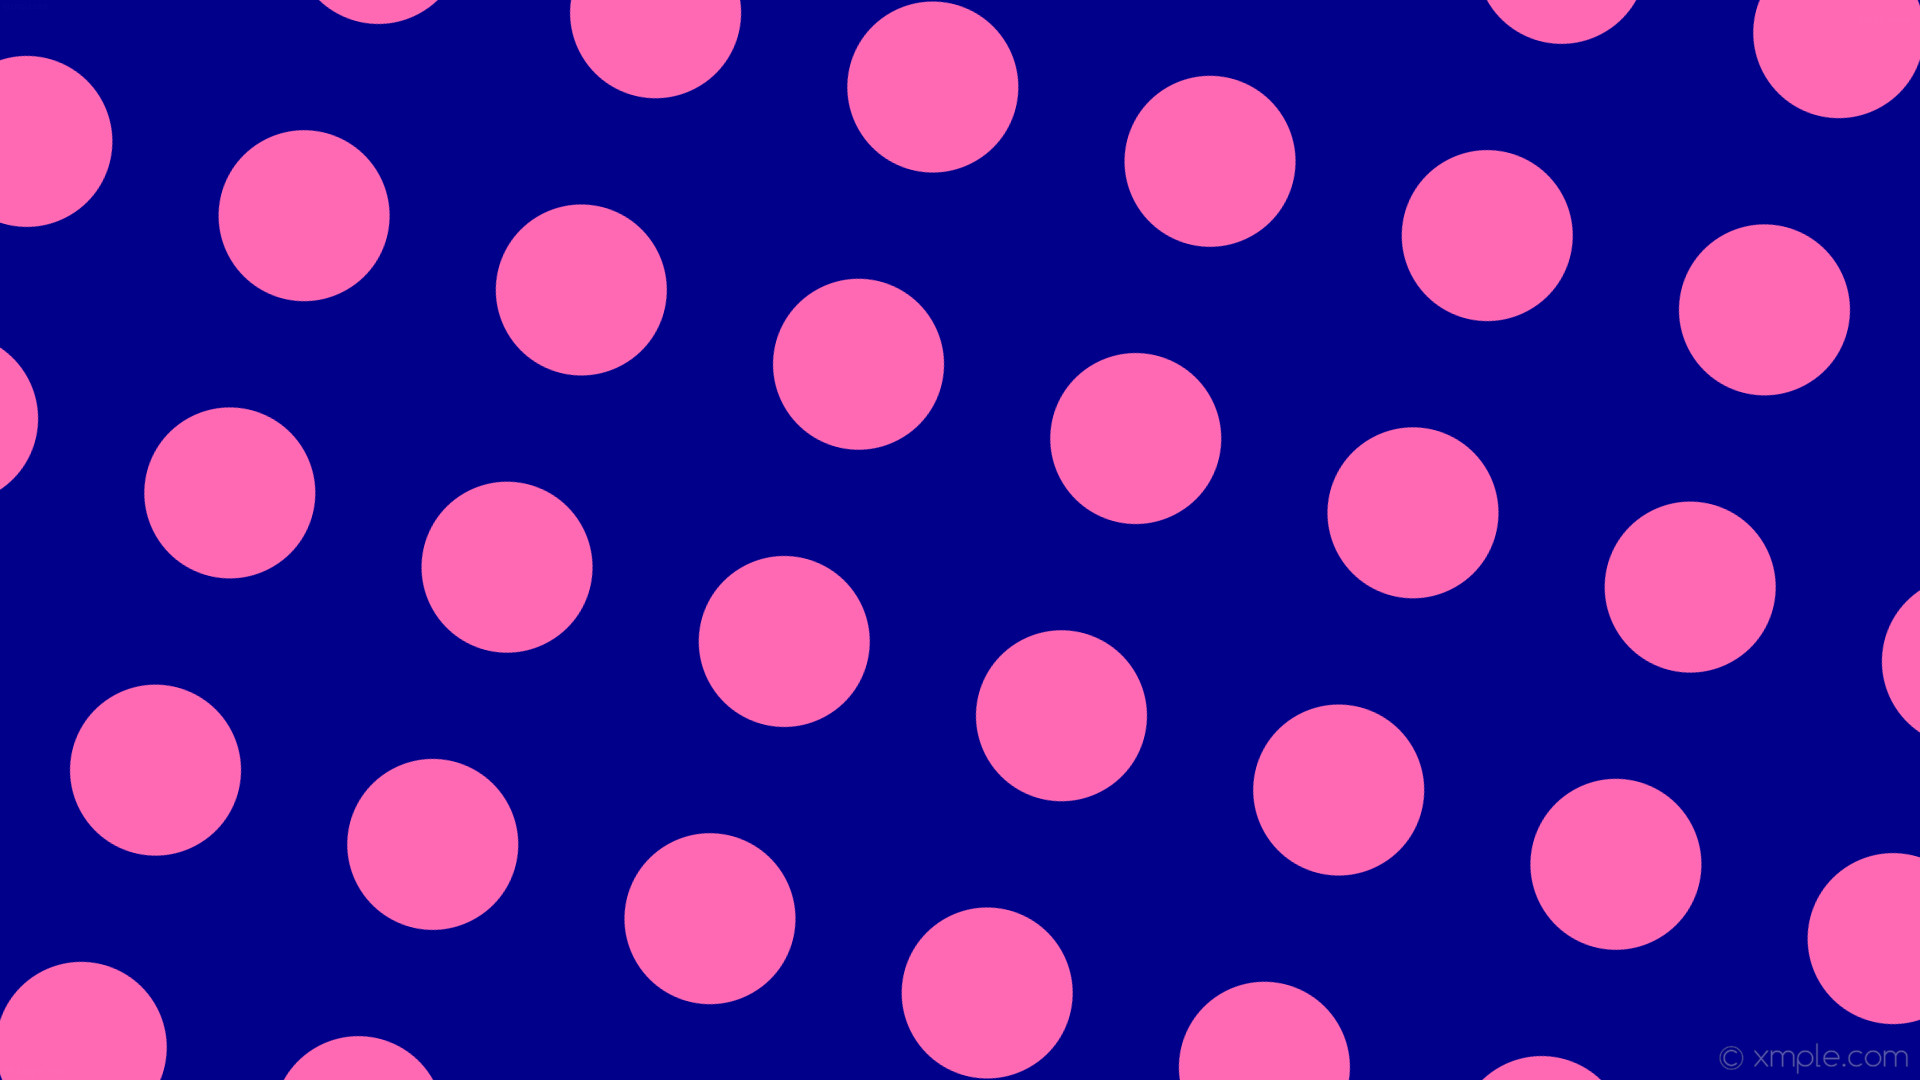 Pics photos pink polka dot s wallpaper - 1920x1080 Wallpaper Spots Brown Dots Blue Polka Sky Blue Sienna 87ceeb A0522d 210 90px